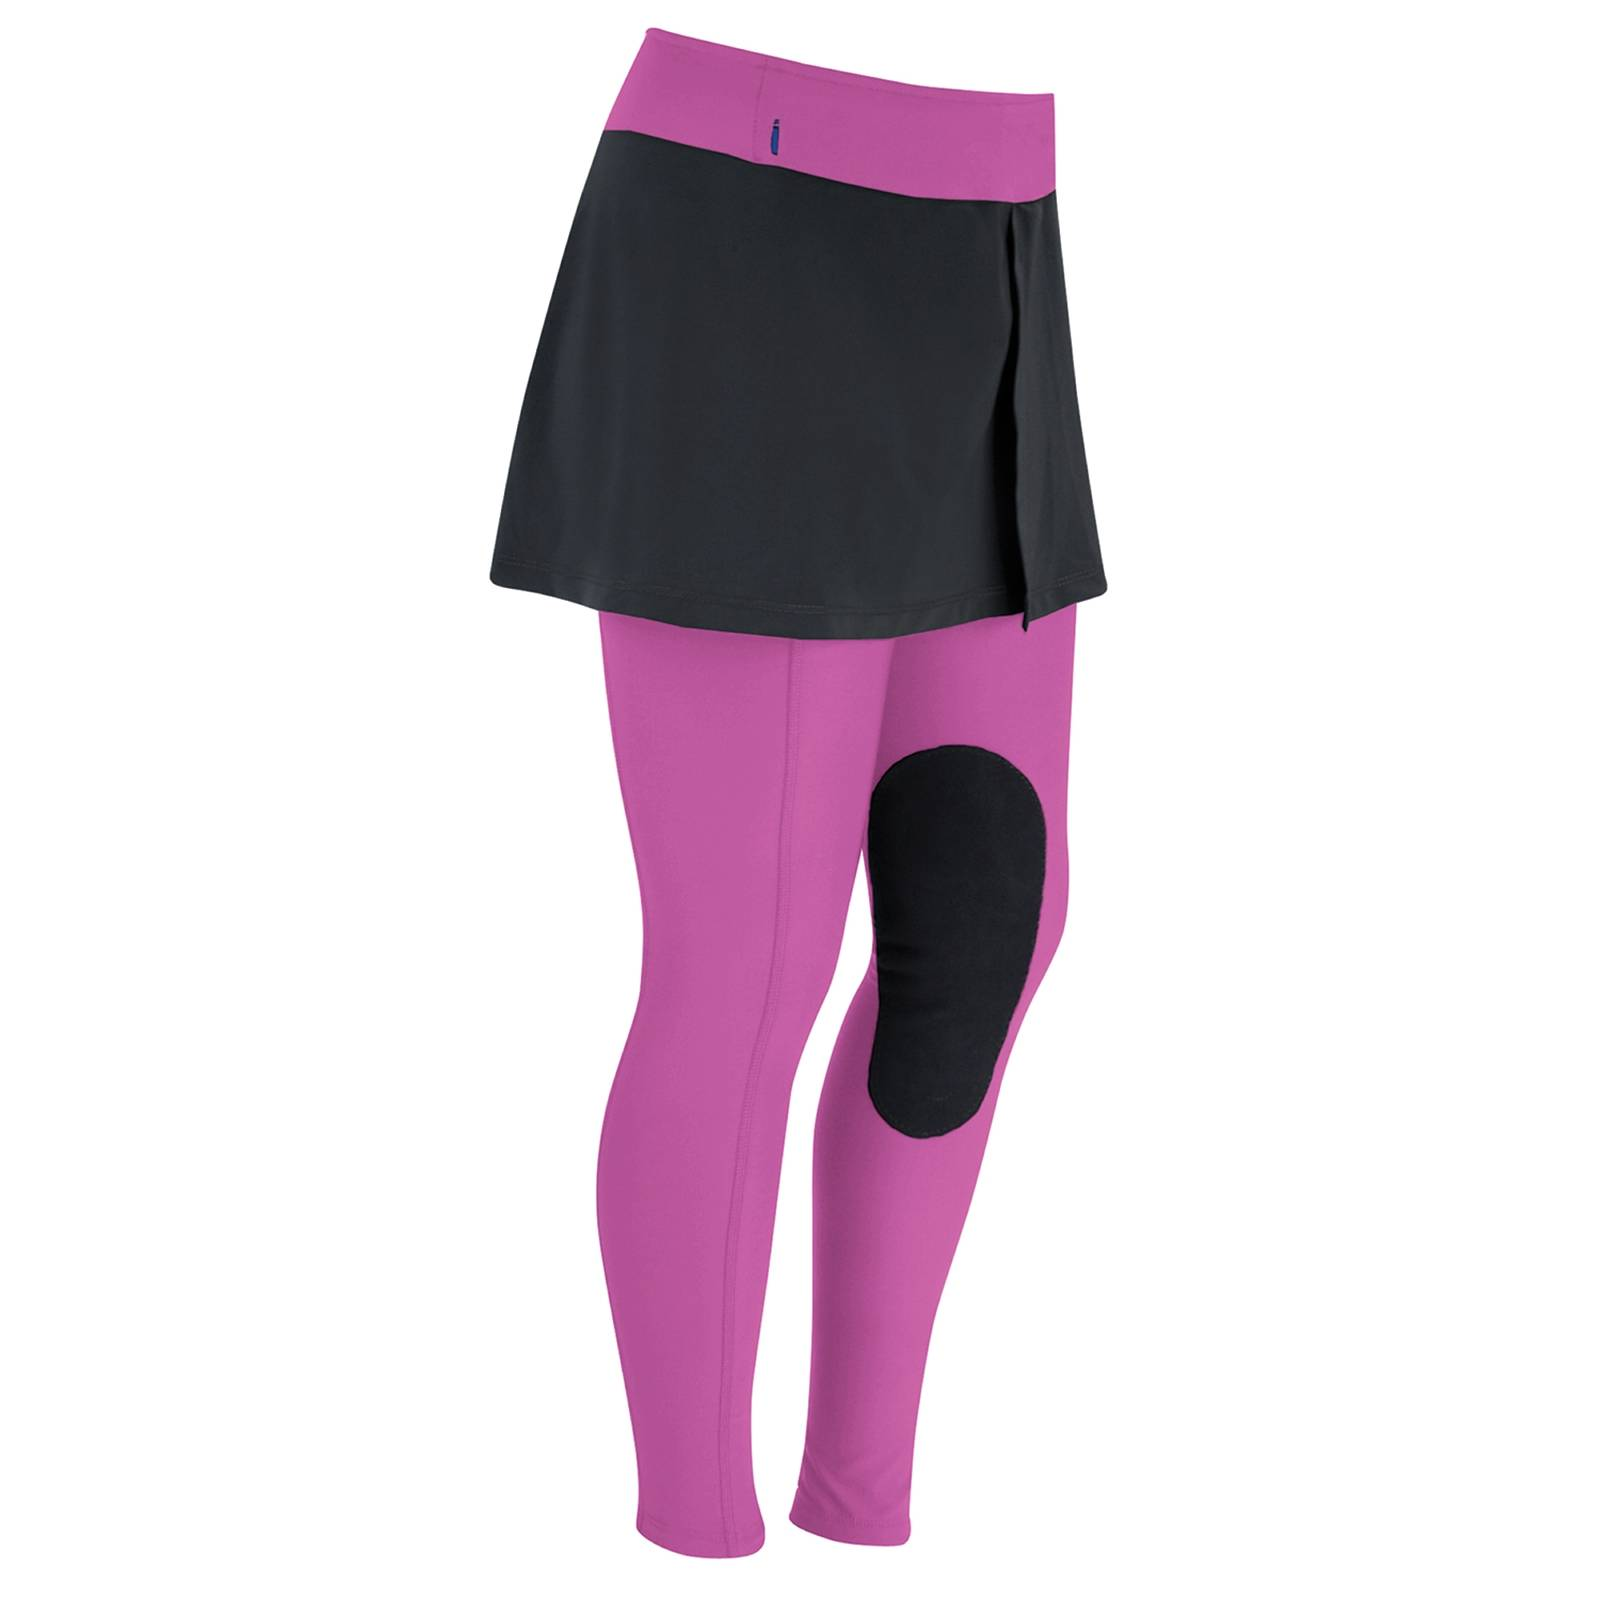 OPEN BOX - Irideon Kids' Issential Miniature Riding Tights - X-Large - Razzle Dazzle